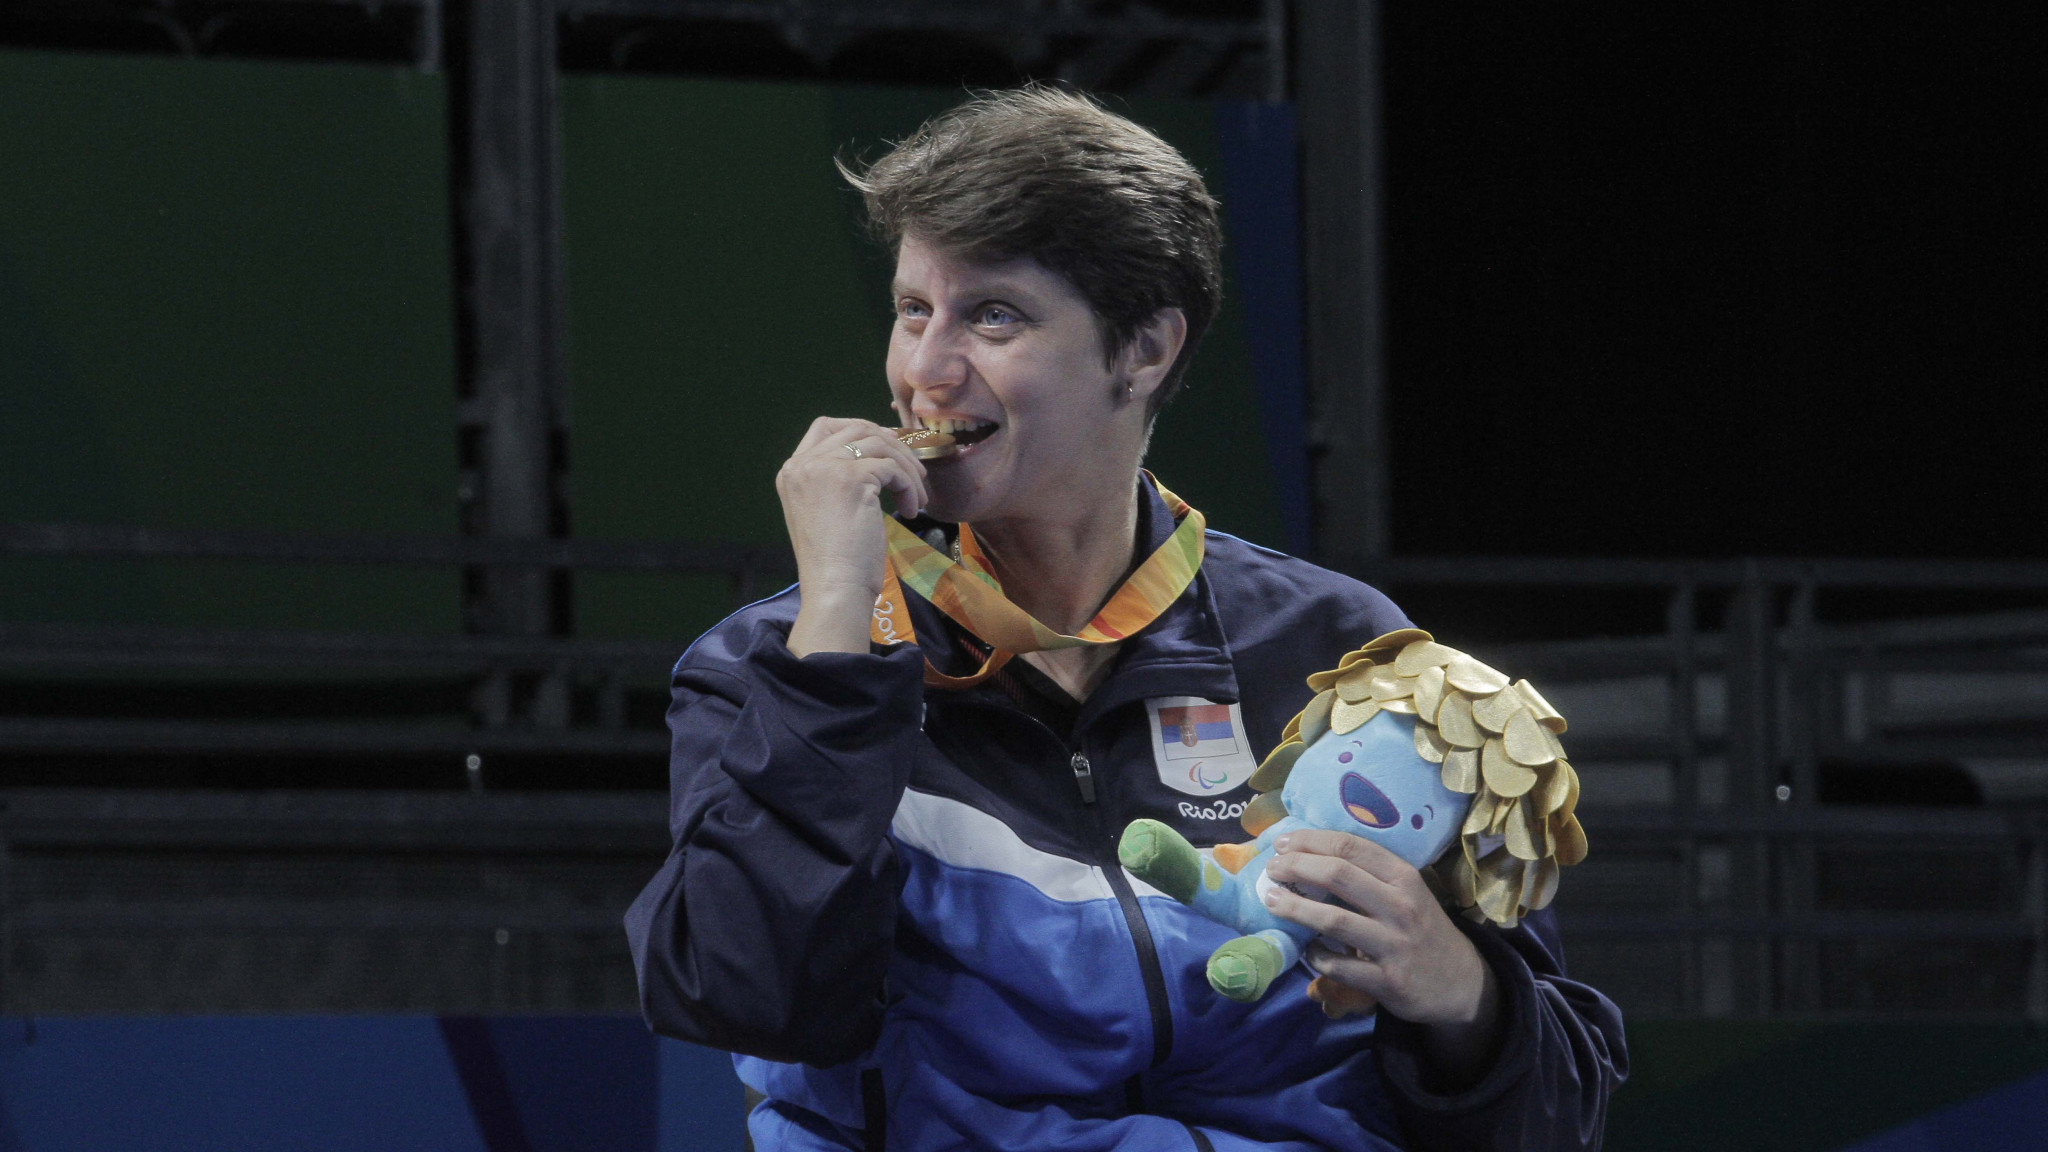 Serbia's Borislava Peric-Rankovic, Rio 2016 champion in women's class four, will be seeking another gold at the ITTF European Para Championships starting at Helsingborg in Sweden tomorrow ©ITTF